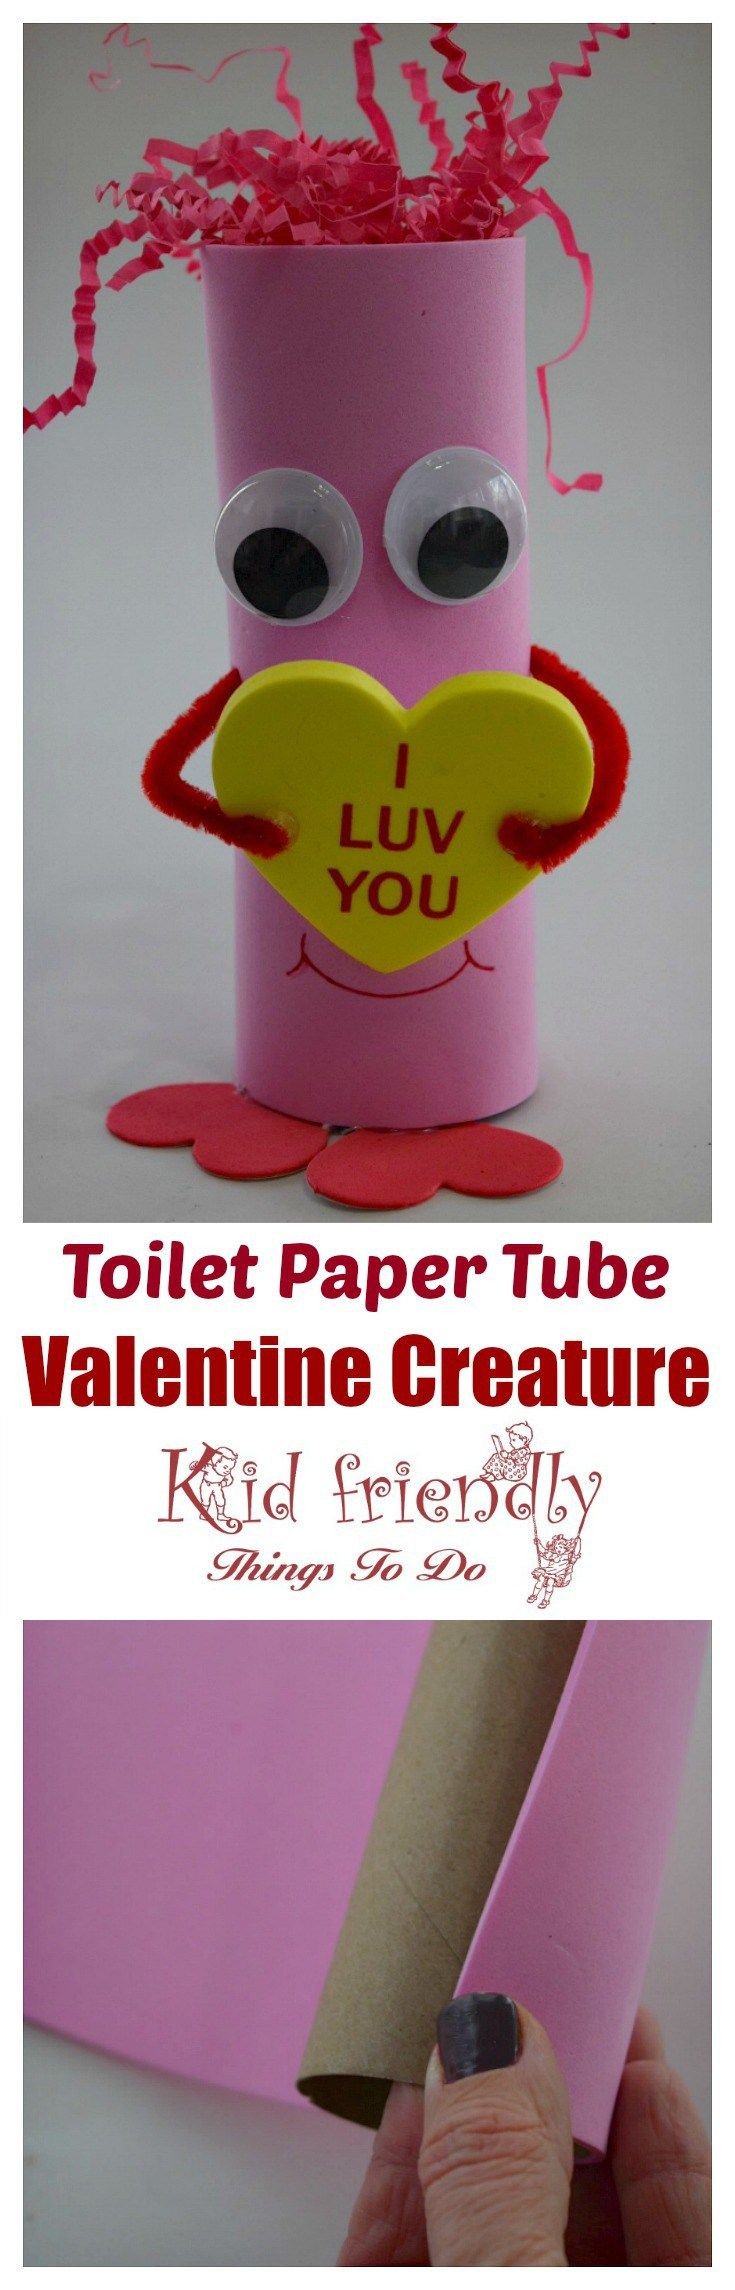 Valentine Crafts For Preschoolers To Make  Best 25 Valentine day crafts ideas on Pinterest